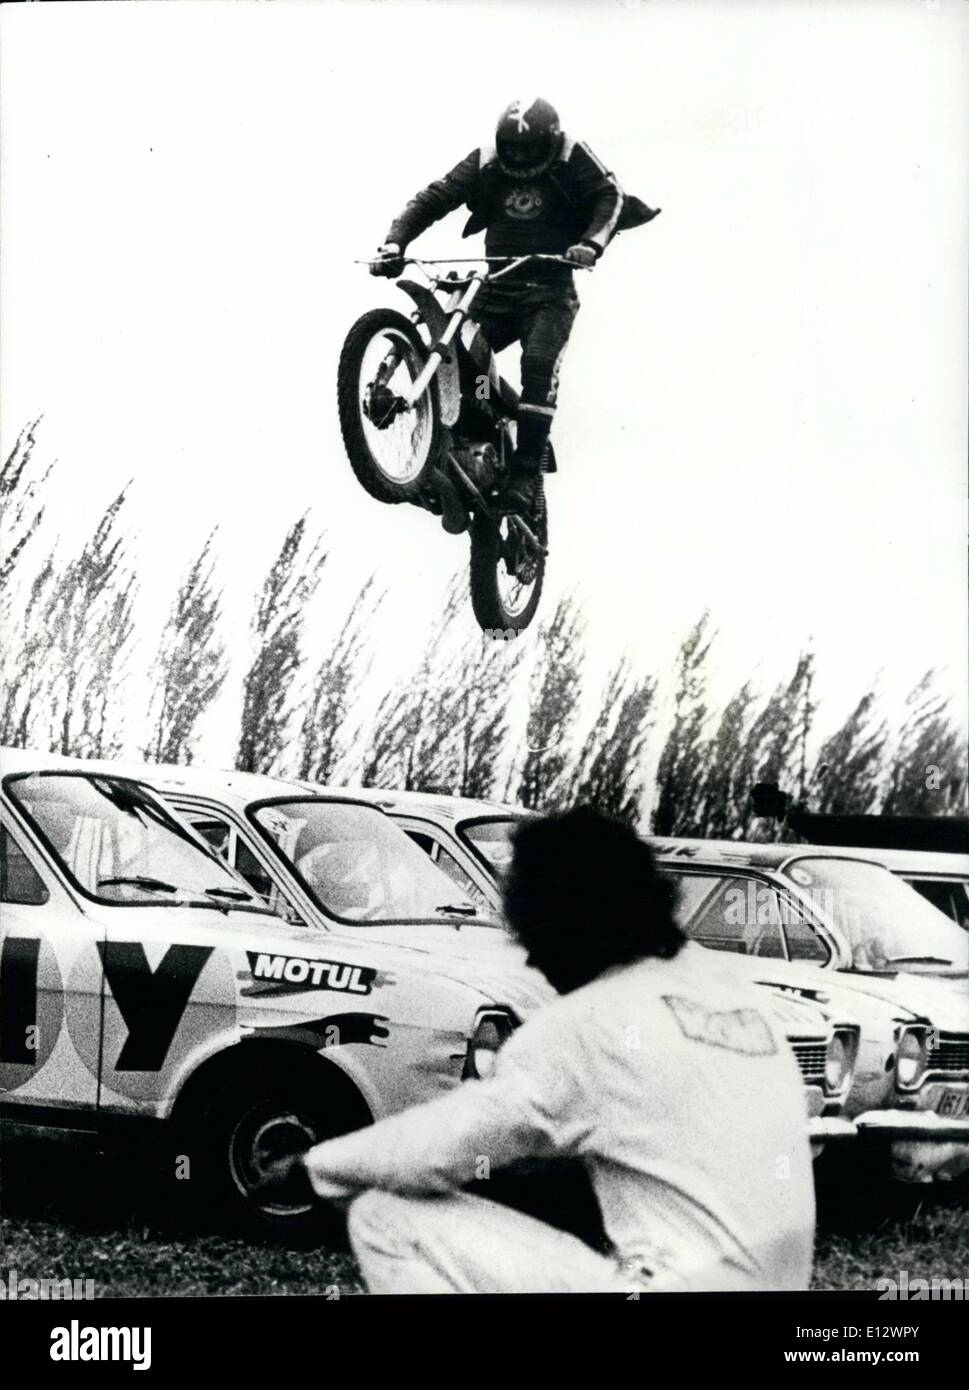 Feb. 26, 2012 - Up and Over; Jean Claude Galliot flies through the air on a motor cycle over a line up of seven cars at Coigneres, near Paris, where he and other French dare-devils, led by Jean Sunny, performing hair-raising stunts, watched by breathless spectators. - Stock Image